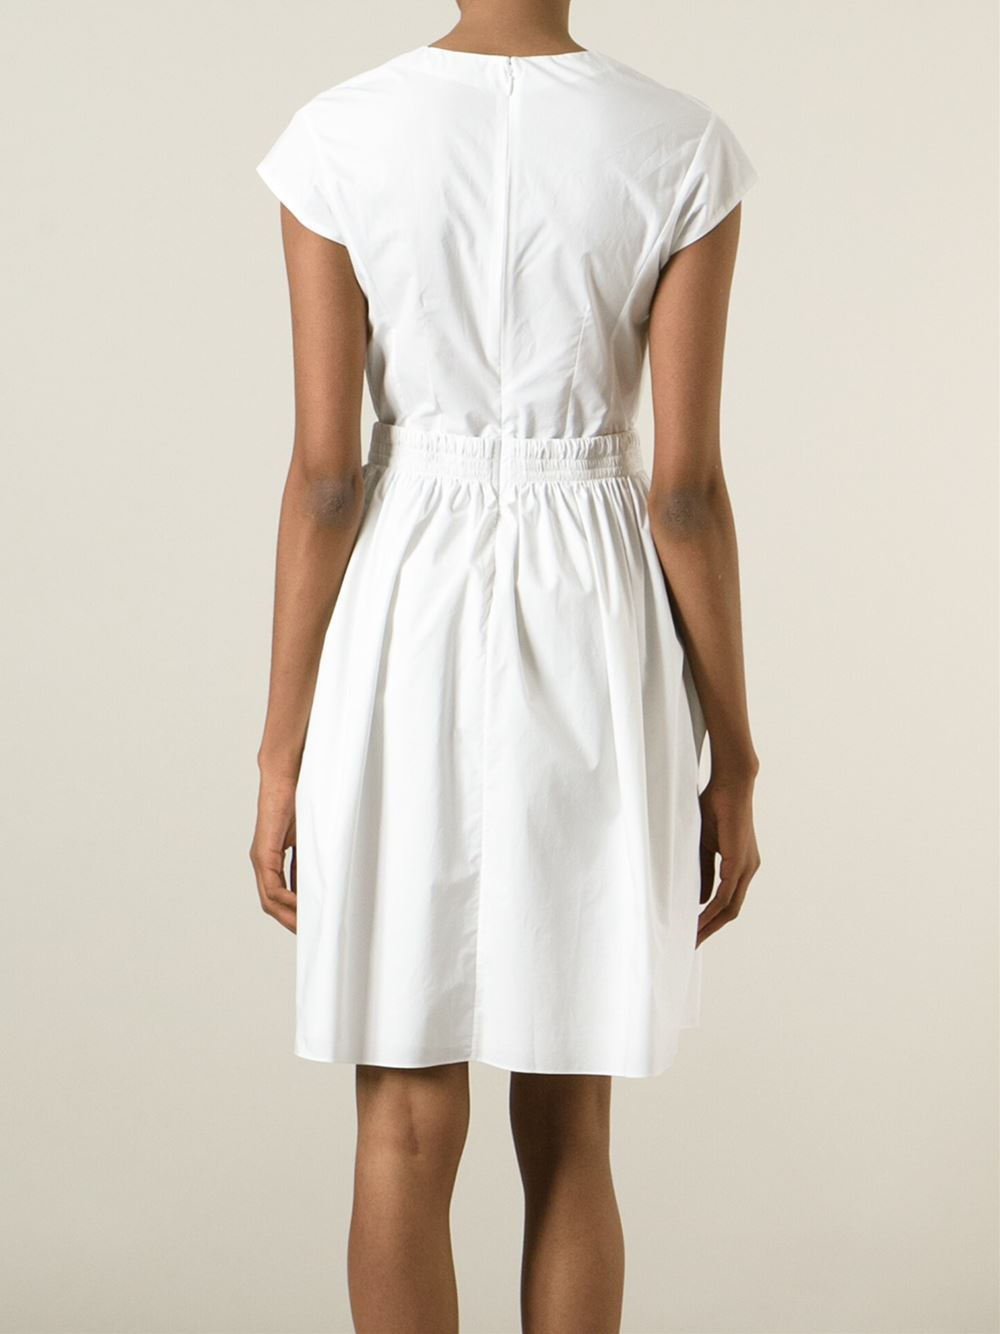 Carven embroidered dress in white lyst